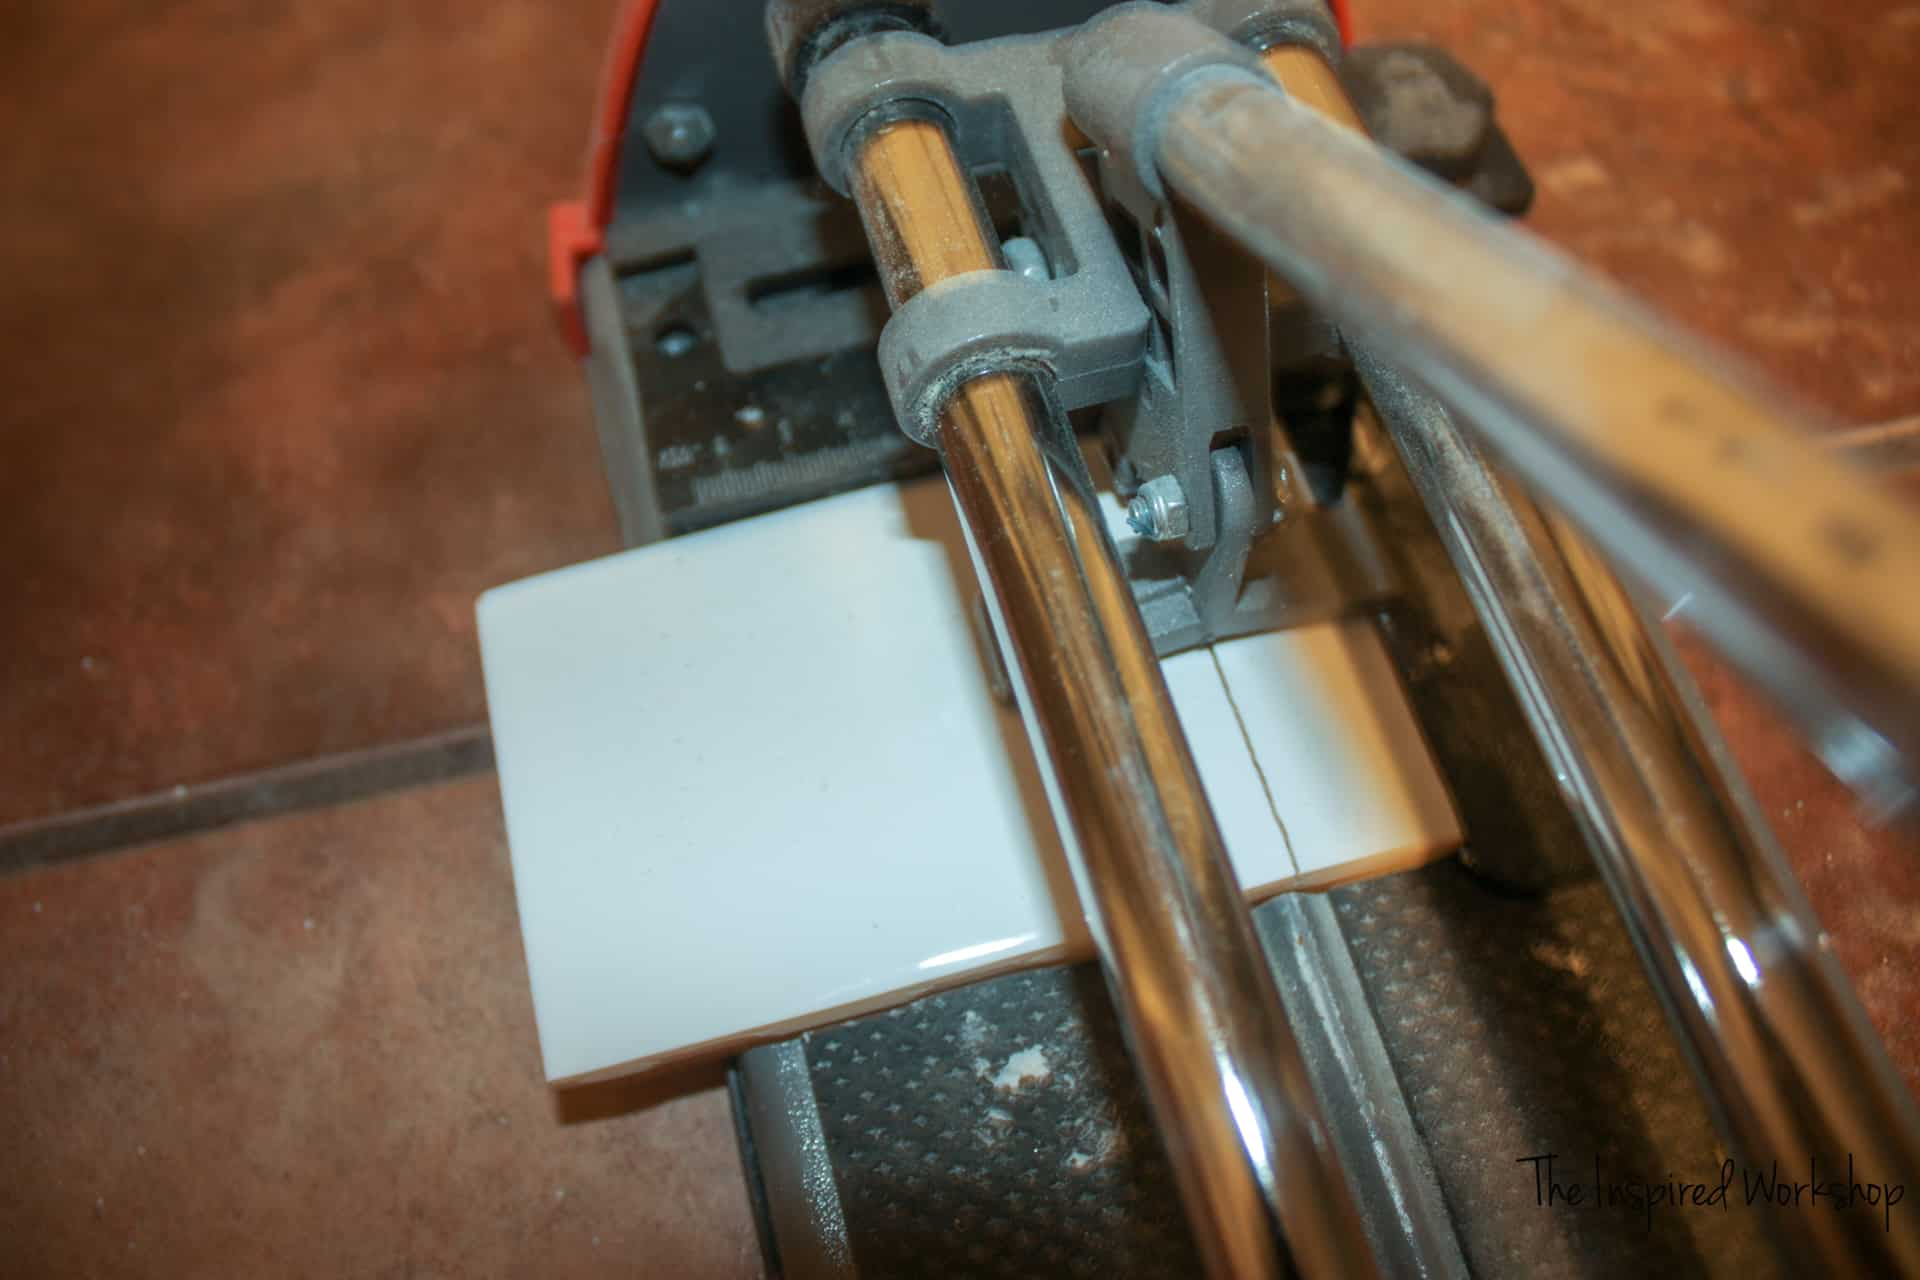 Cutting tile with a tile cutter